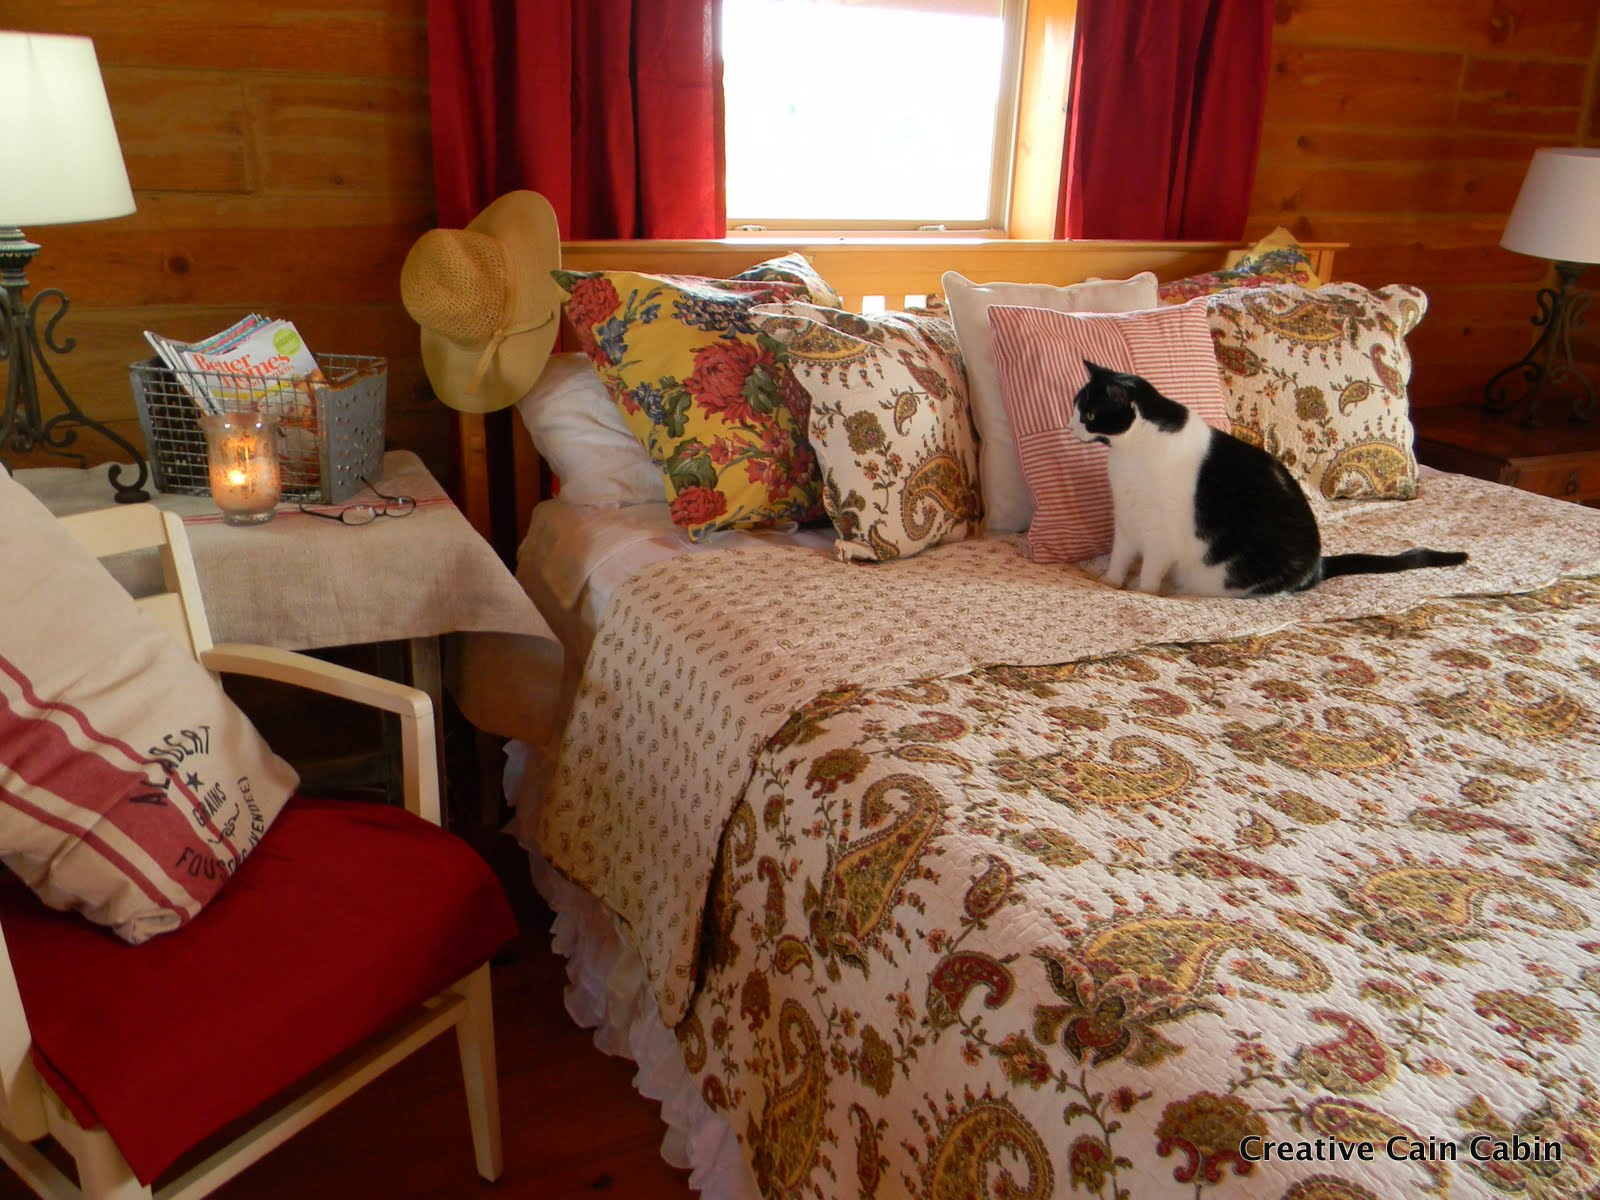 Fall Bedroom with a Ruffled Bedskirt - CREATIVE CAIN CABIN